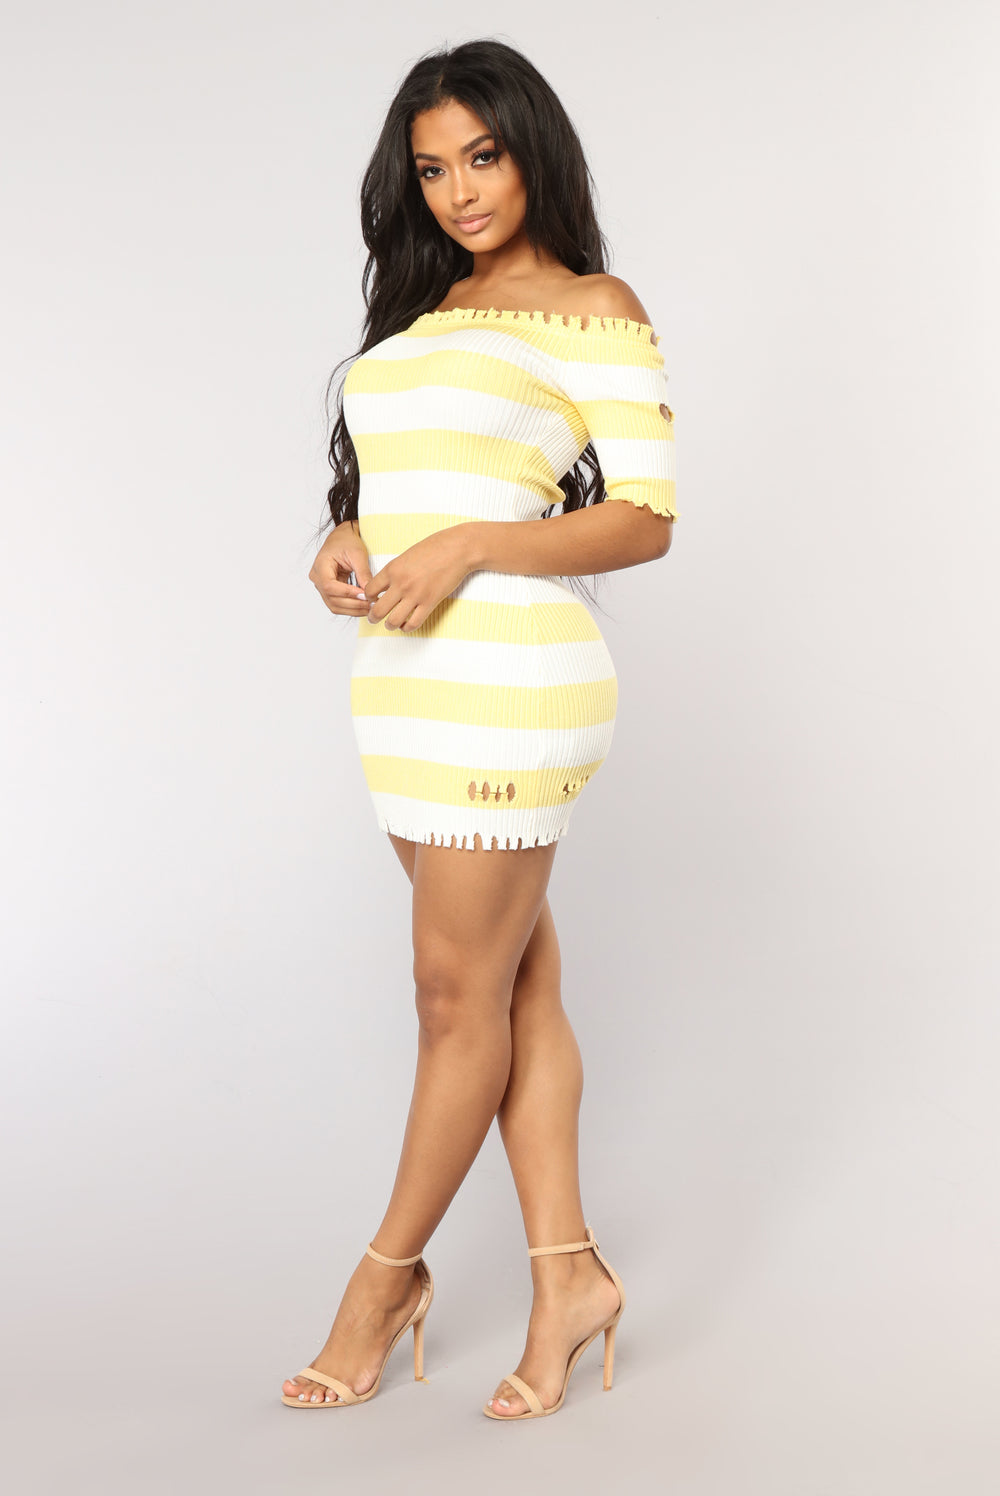 Girl Without Limits Striped Dress - Yellow